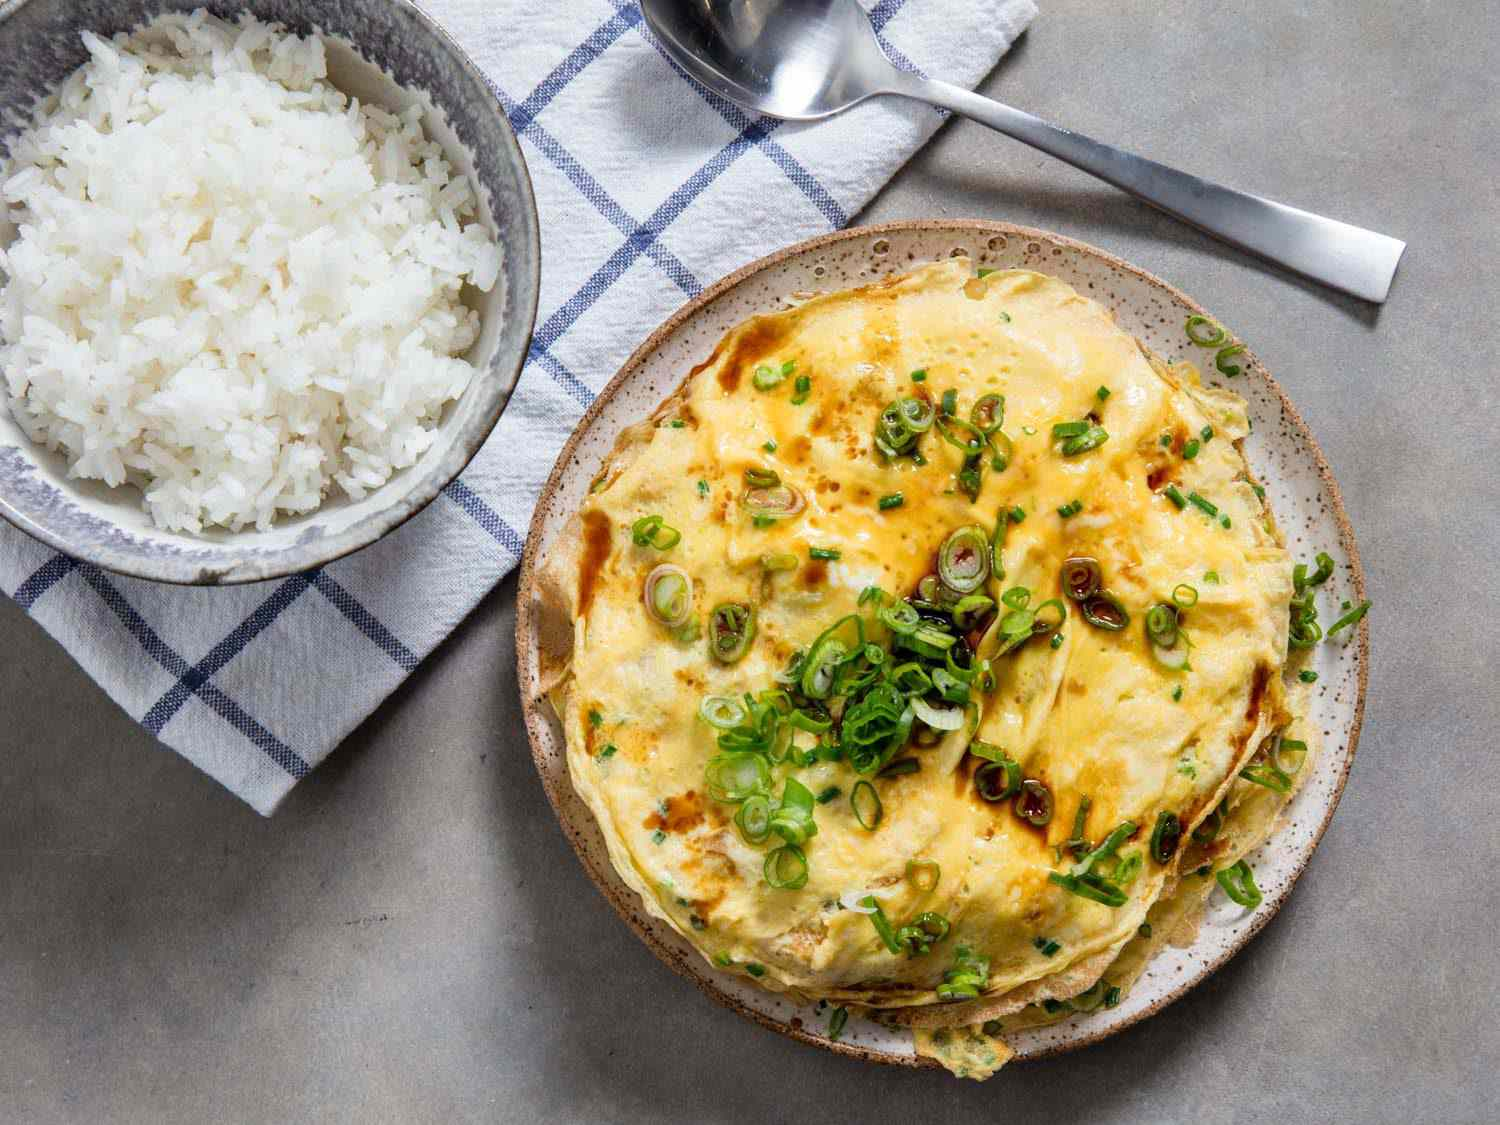 Overhead view of Chinese-style layered omelette with bowl of rice alongside